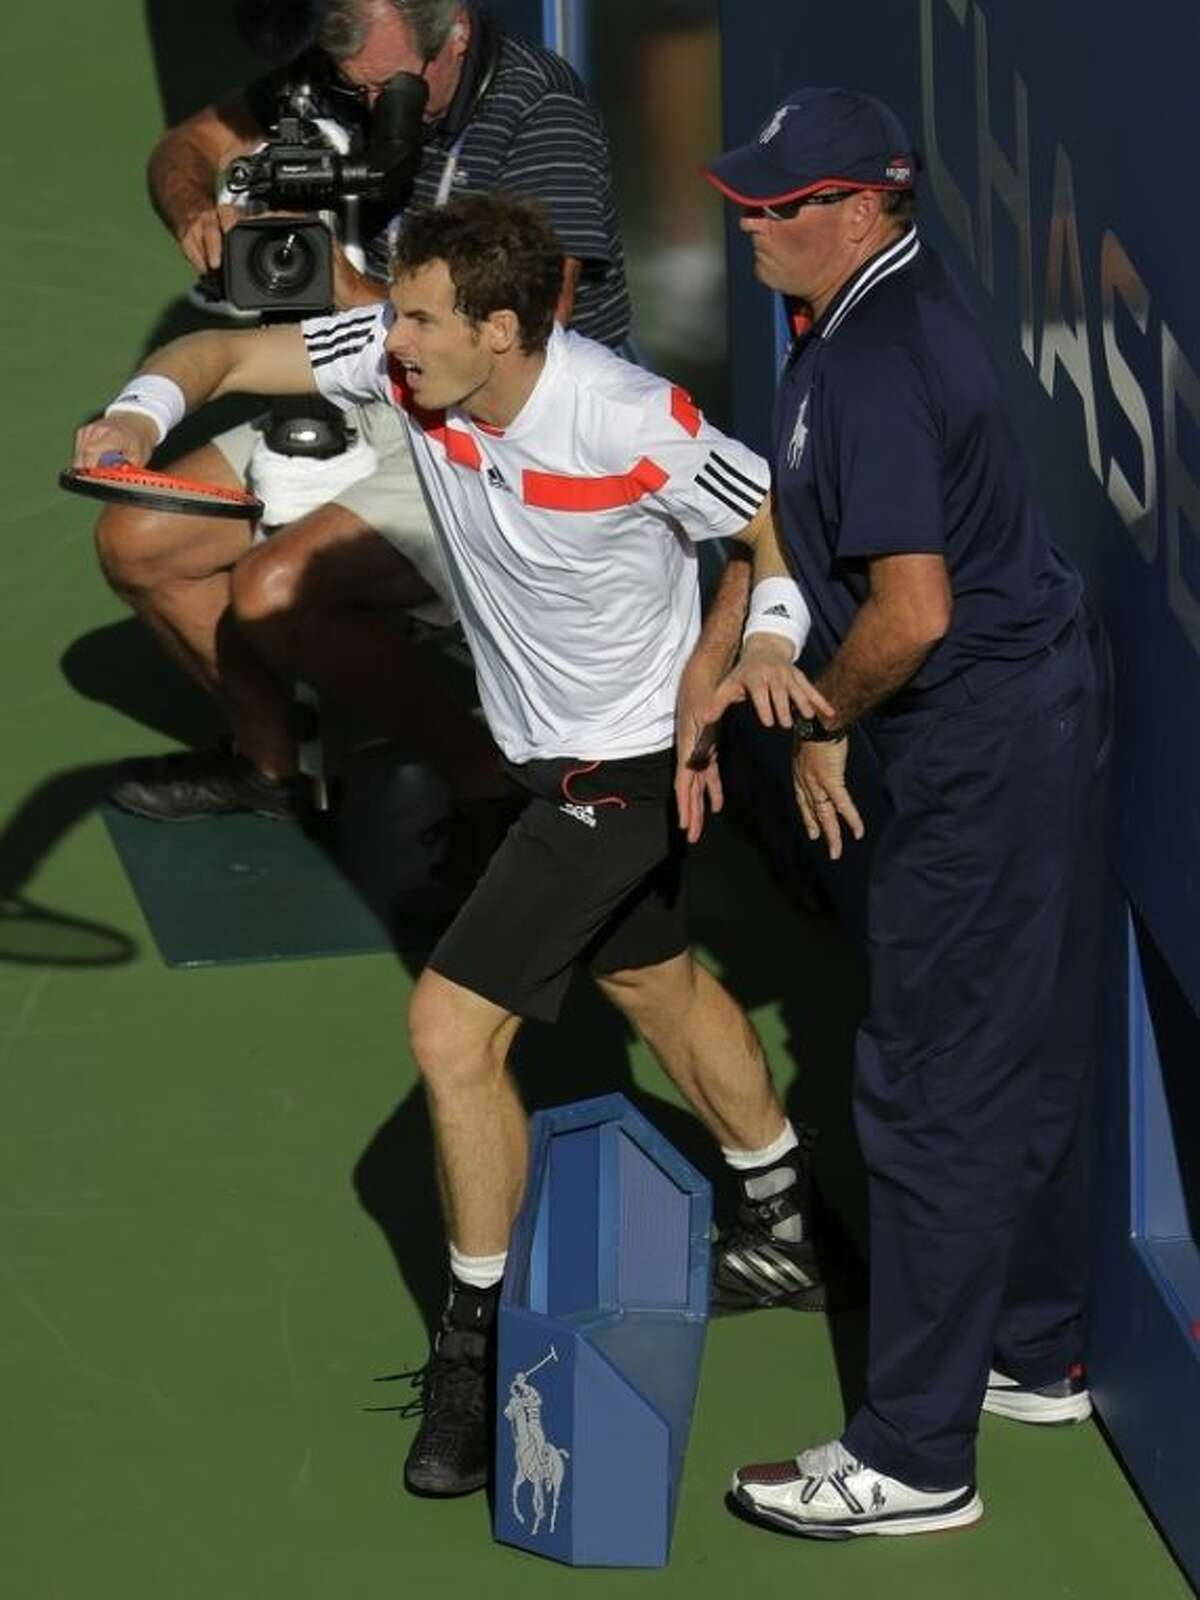 Andy Murray, of Great Britain, steps back into the linesman as he returns a shot to Stanislas Wawrinka, of Switzerland, during the quarterfinals of the 2013 U.S. Open tennis tournament, Thursday, Sept. 5, 2013, in New York. (AP Photo/David Goldman)